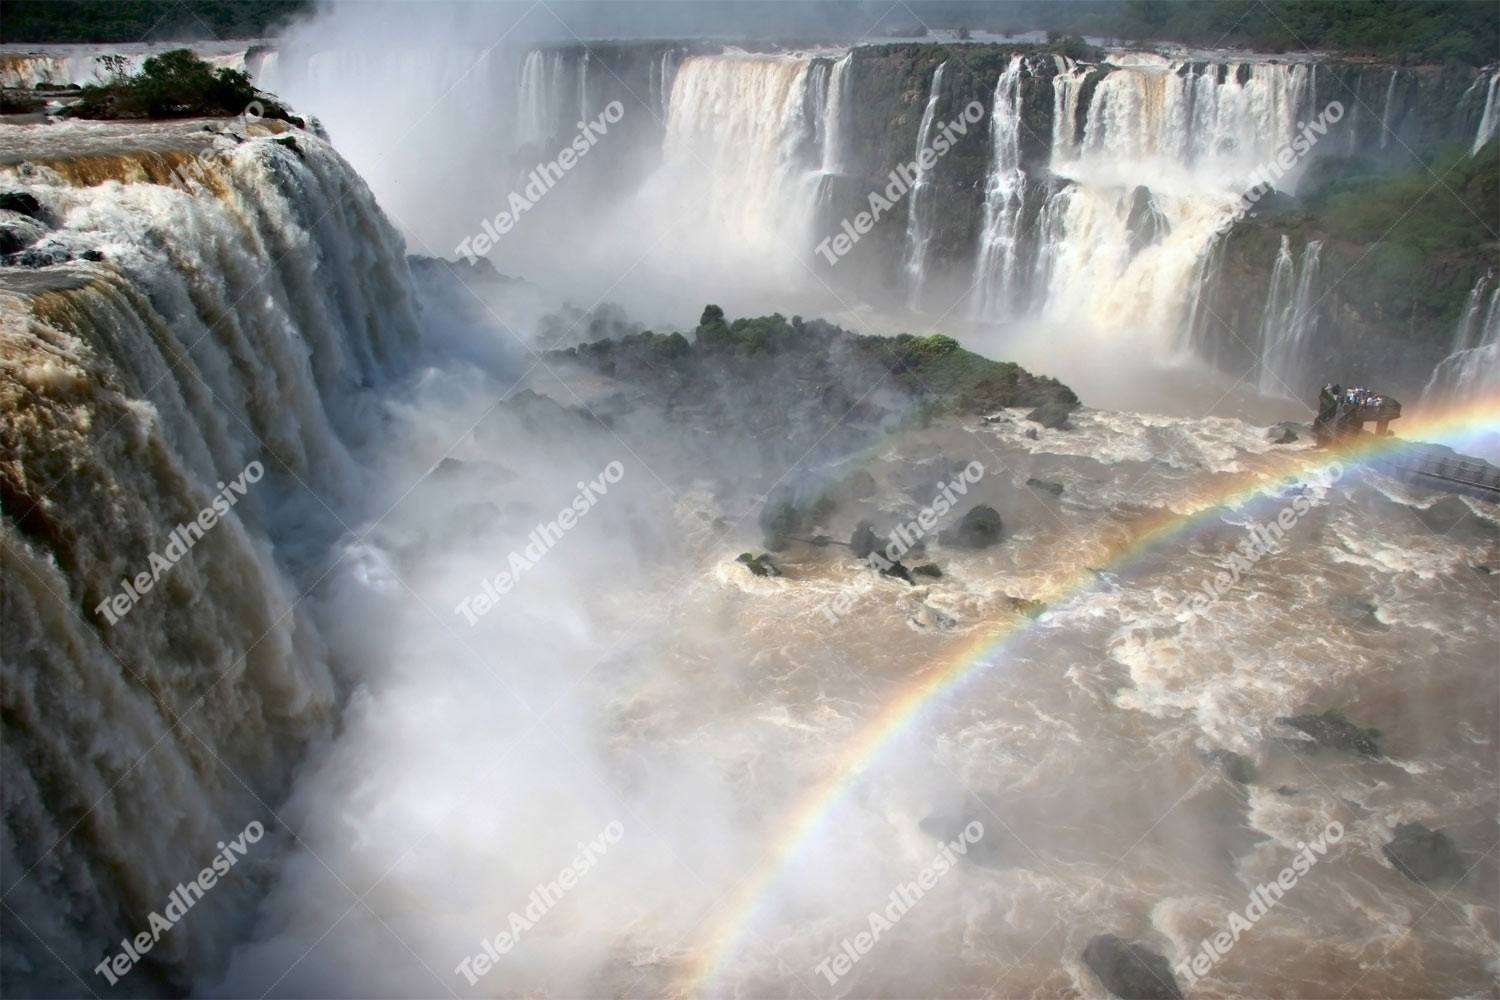 Fototapeten: Waterfalls